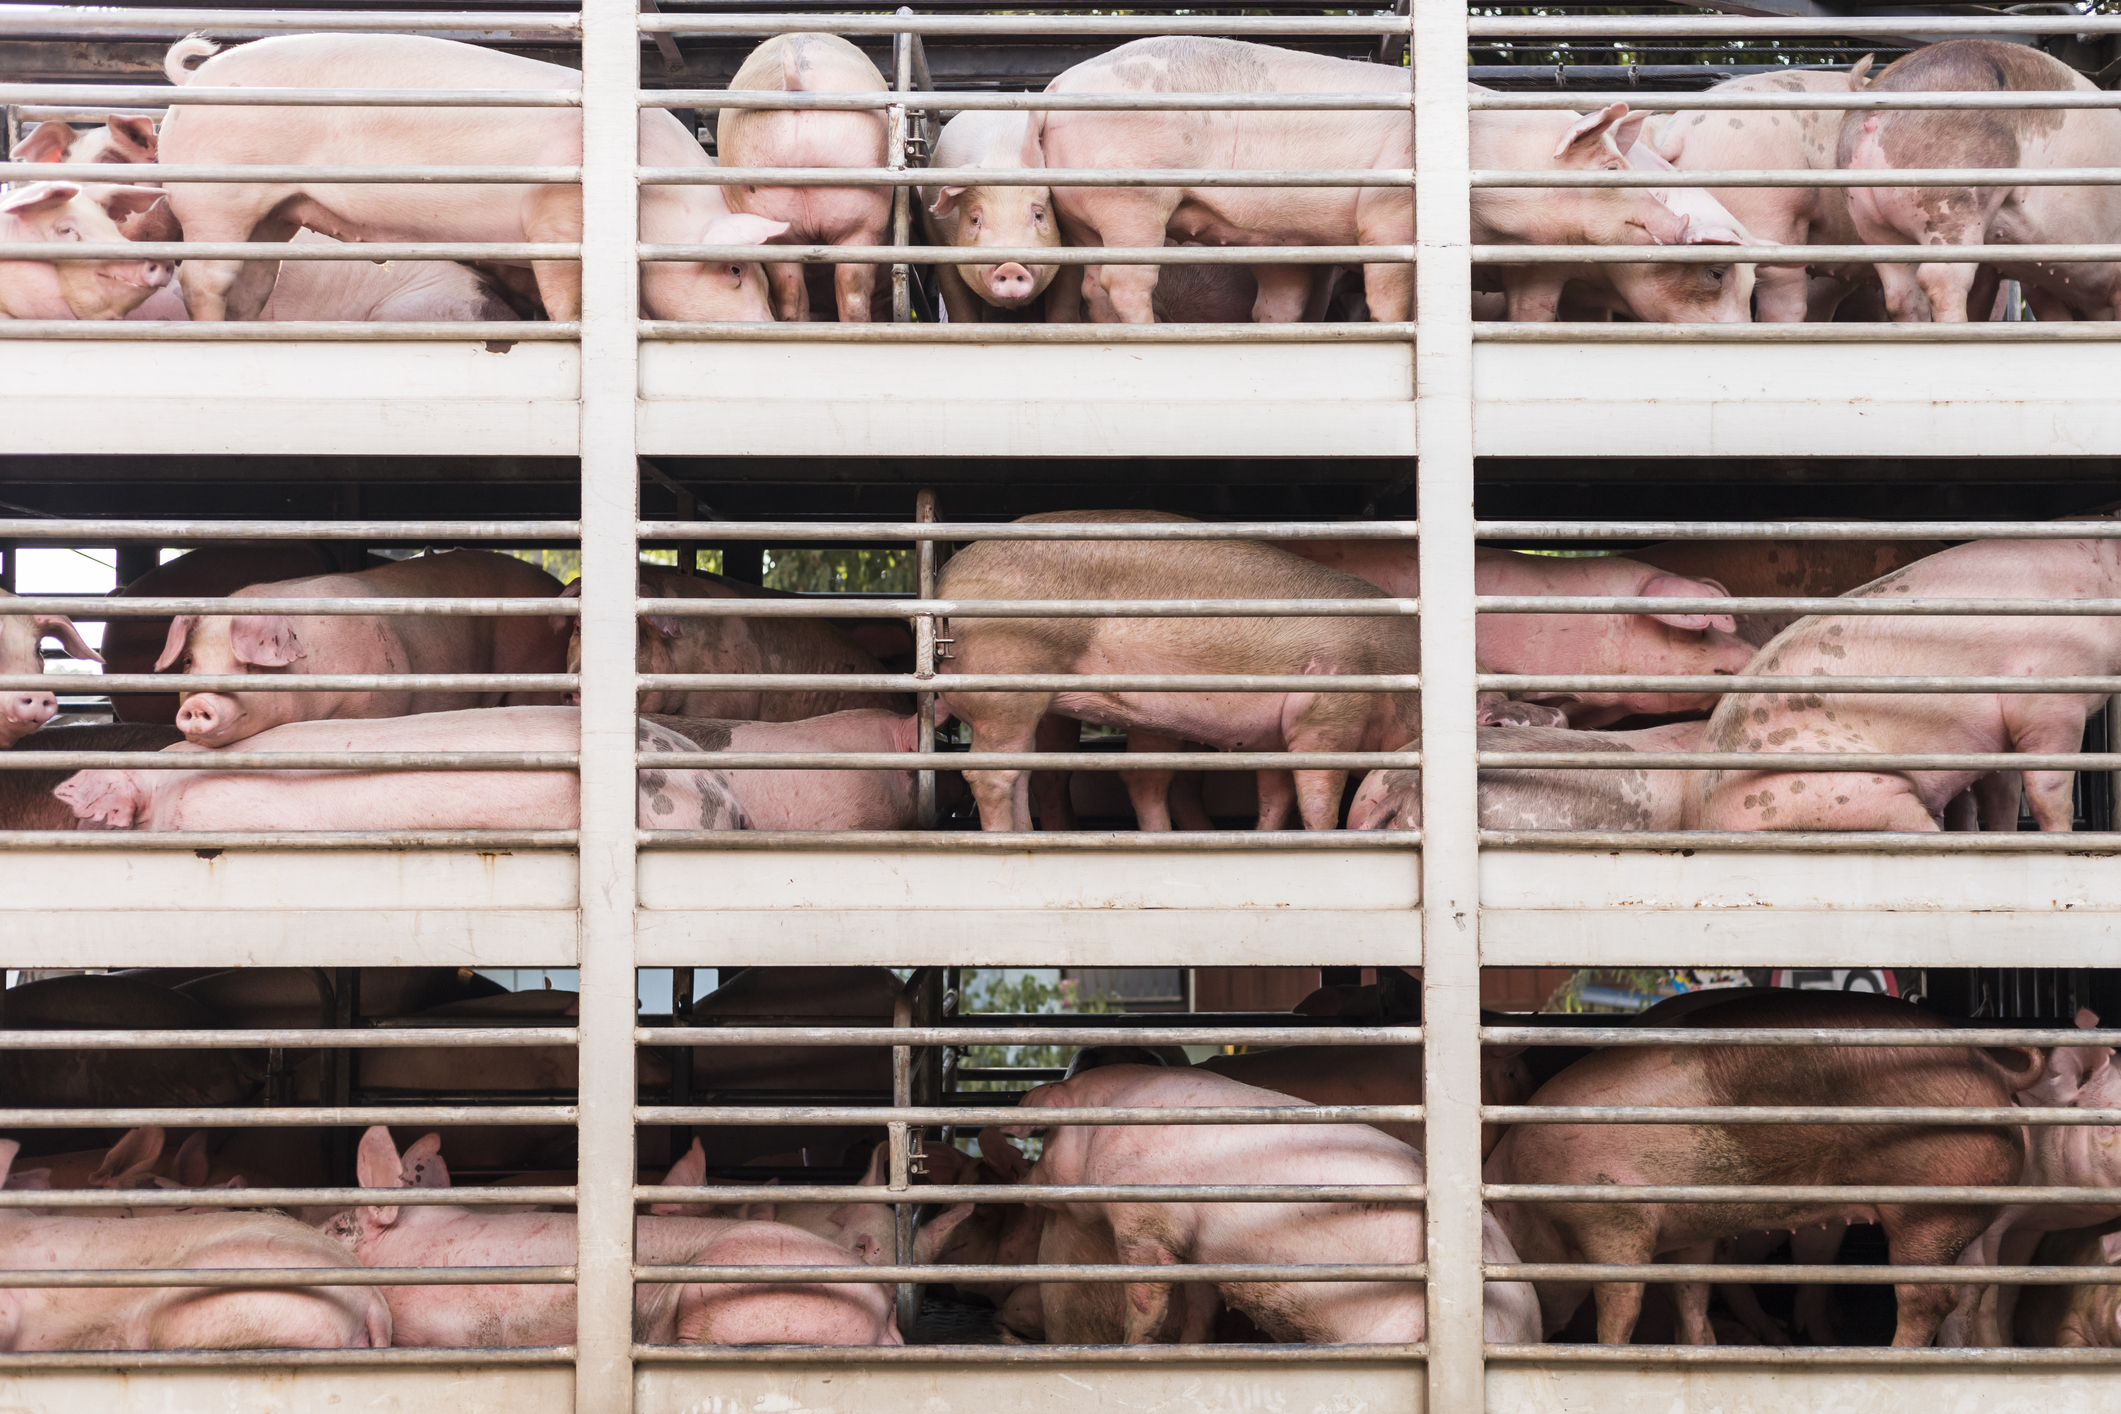 Pigs would be prone to diseases while waiting for 10 hours in a hot truck stop under the new ELD law.